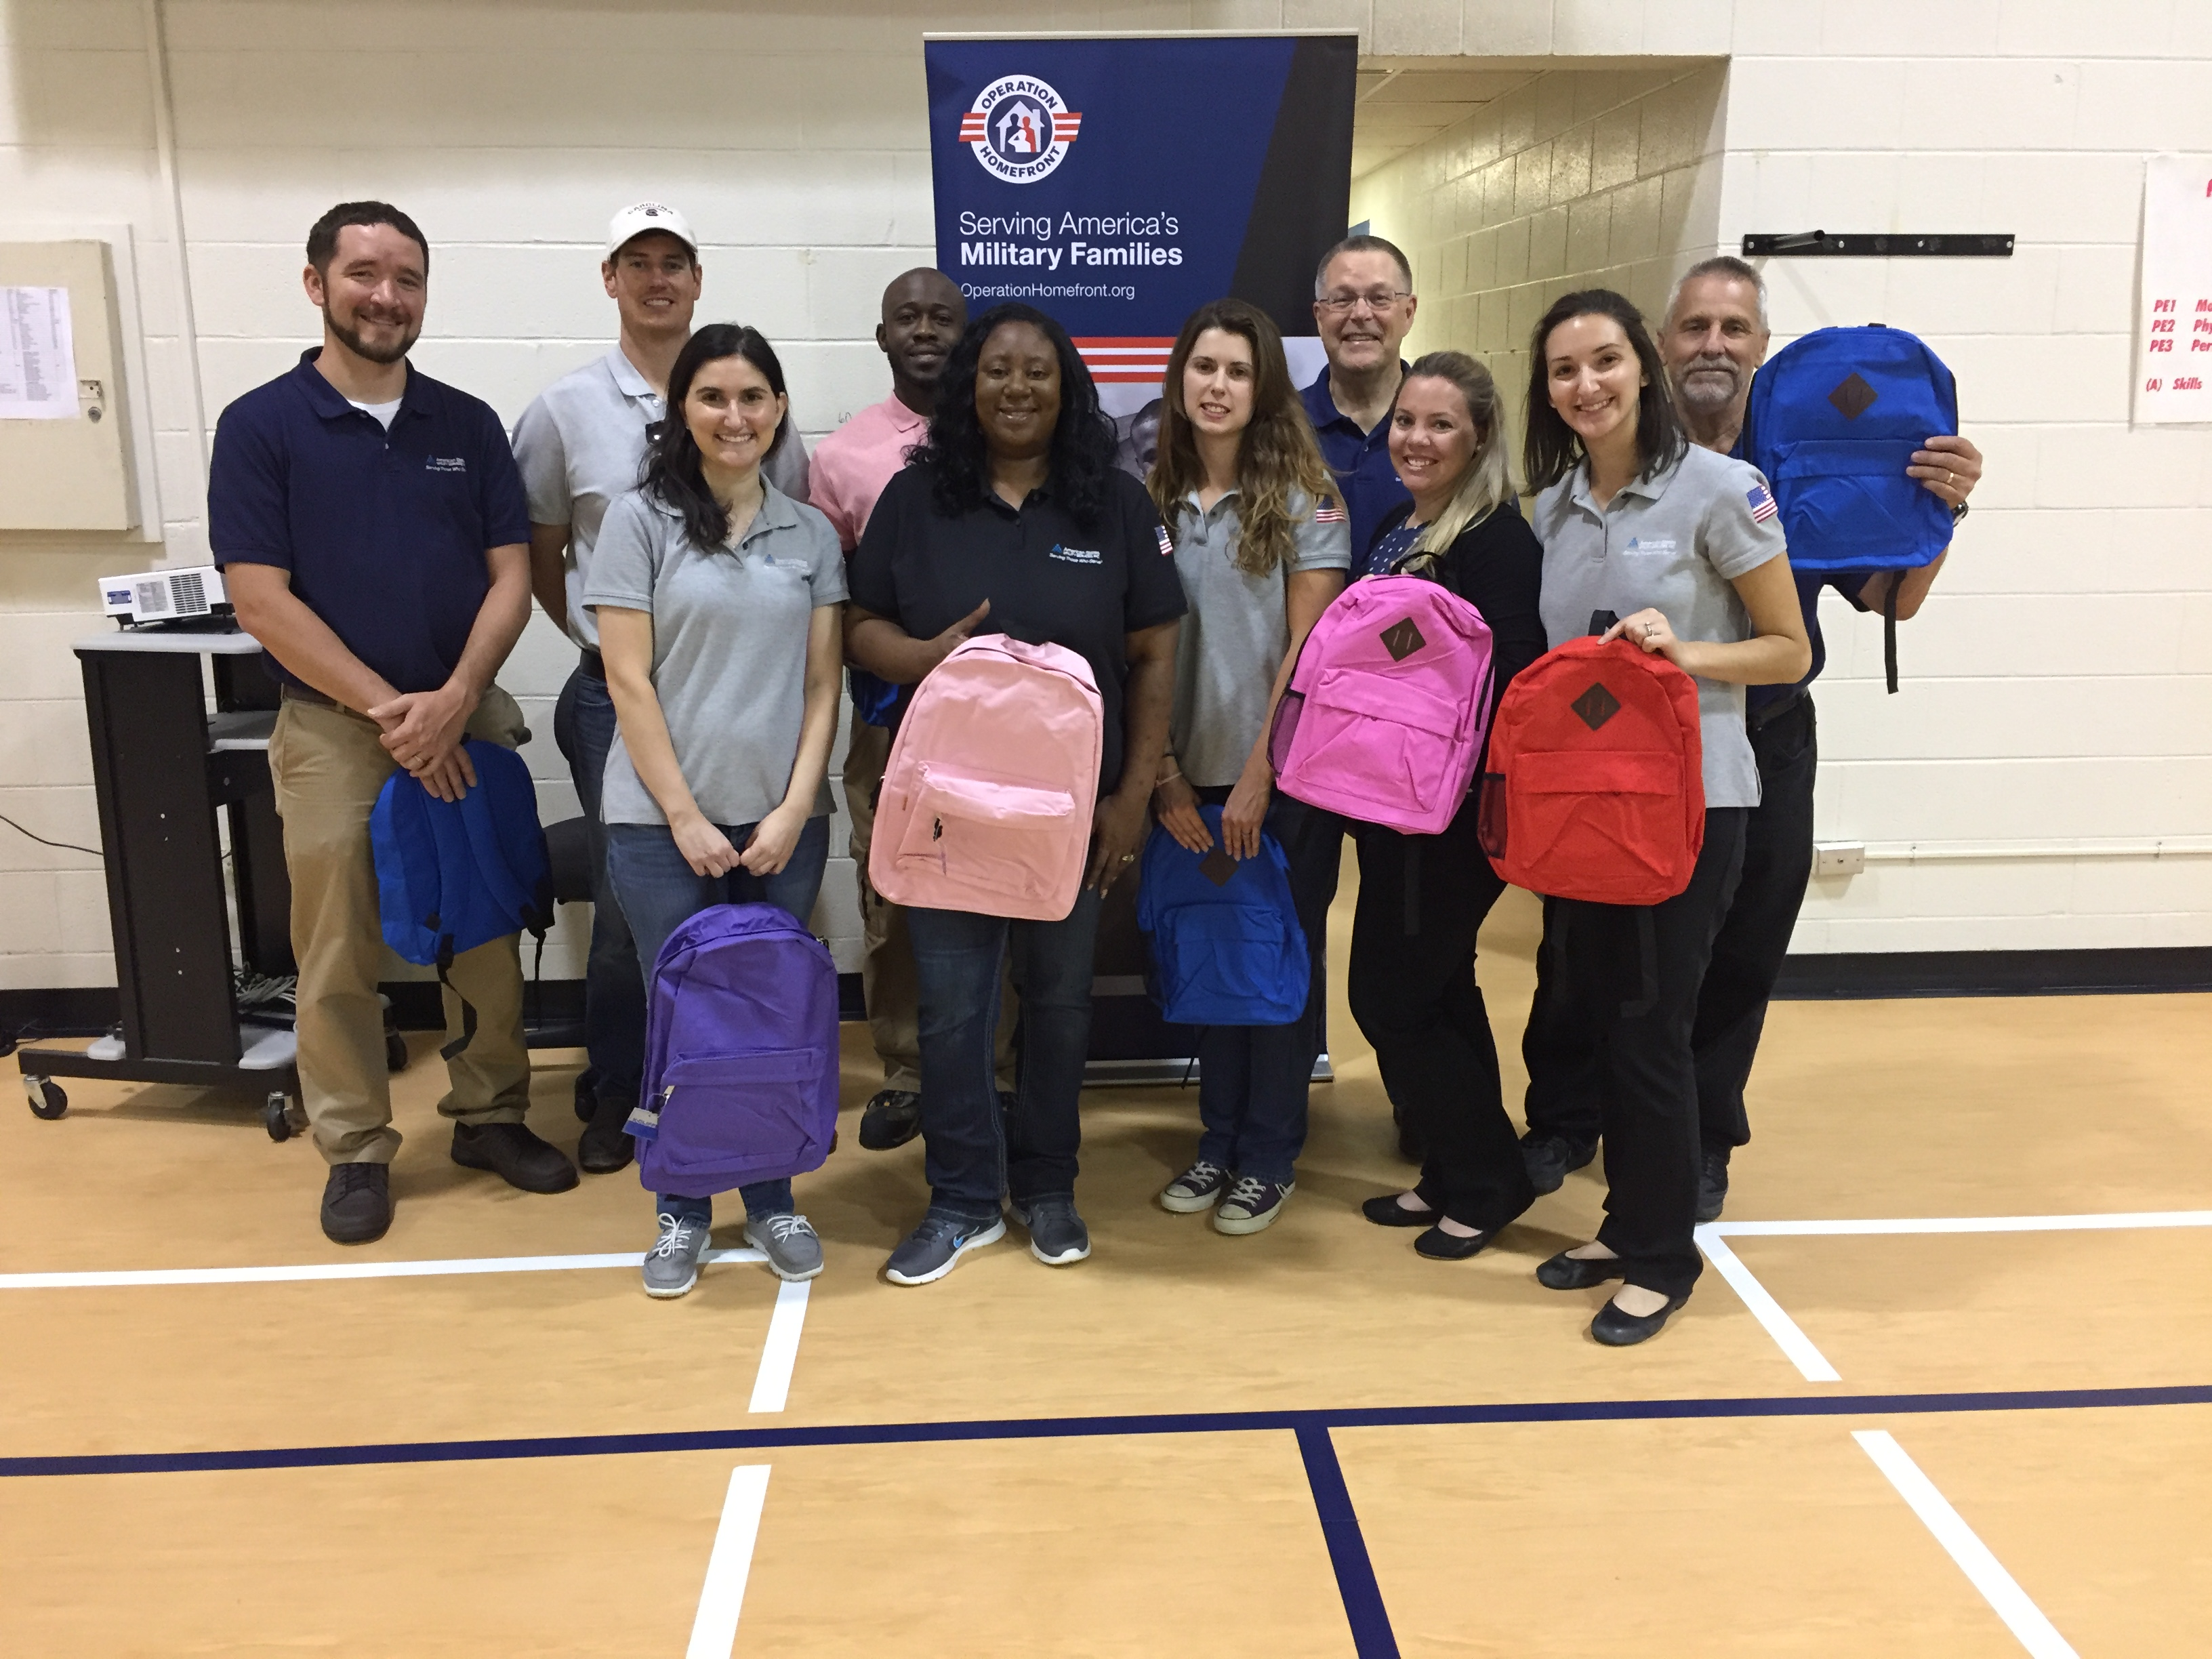 ASUS employees take part in Operation Homefront's Back-to-School Brigade